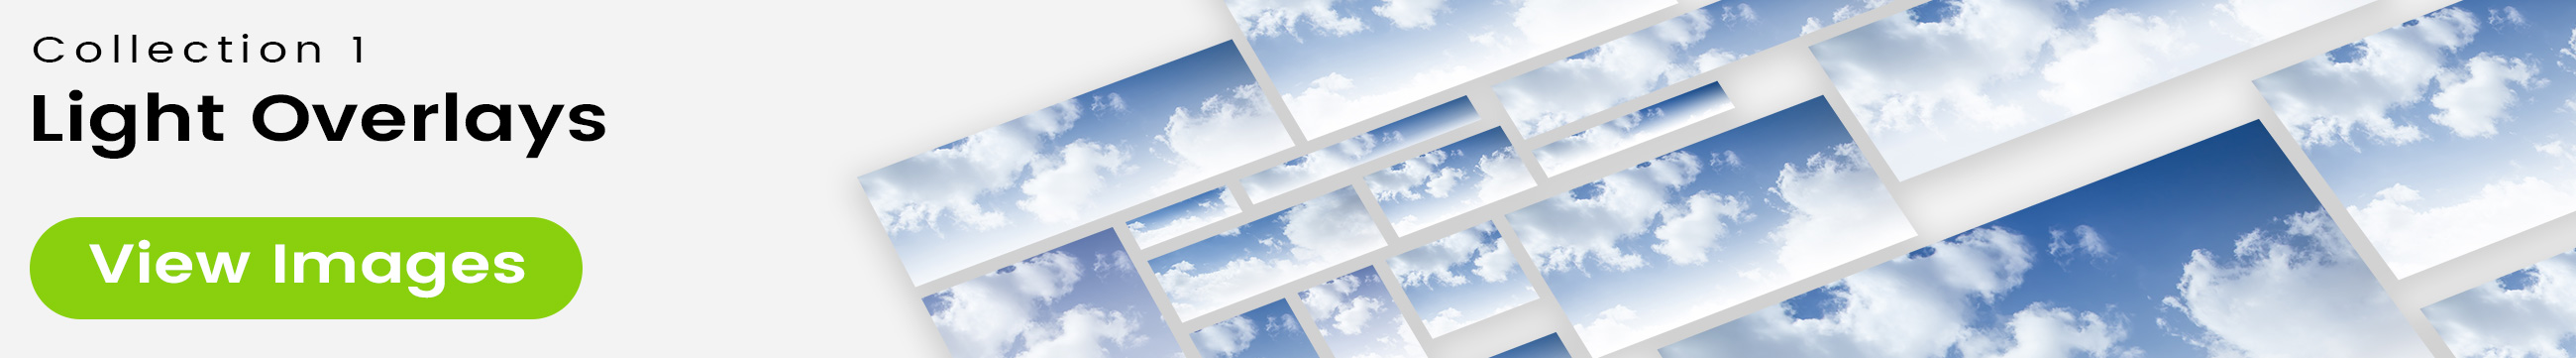 See 25 bonus images included with clouds stock image 9504. Collection 1 of 4 features a light overlay design.